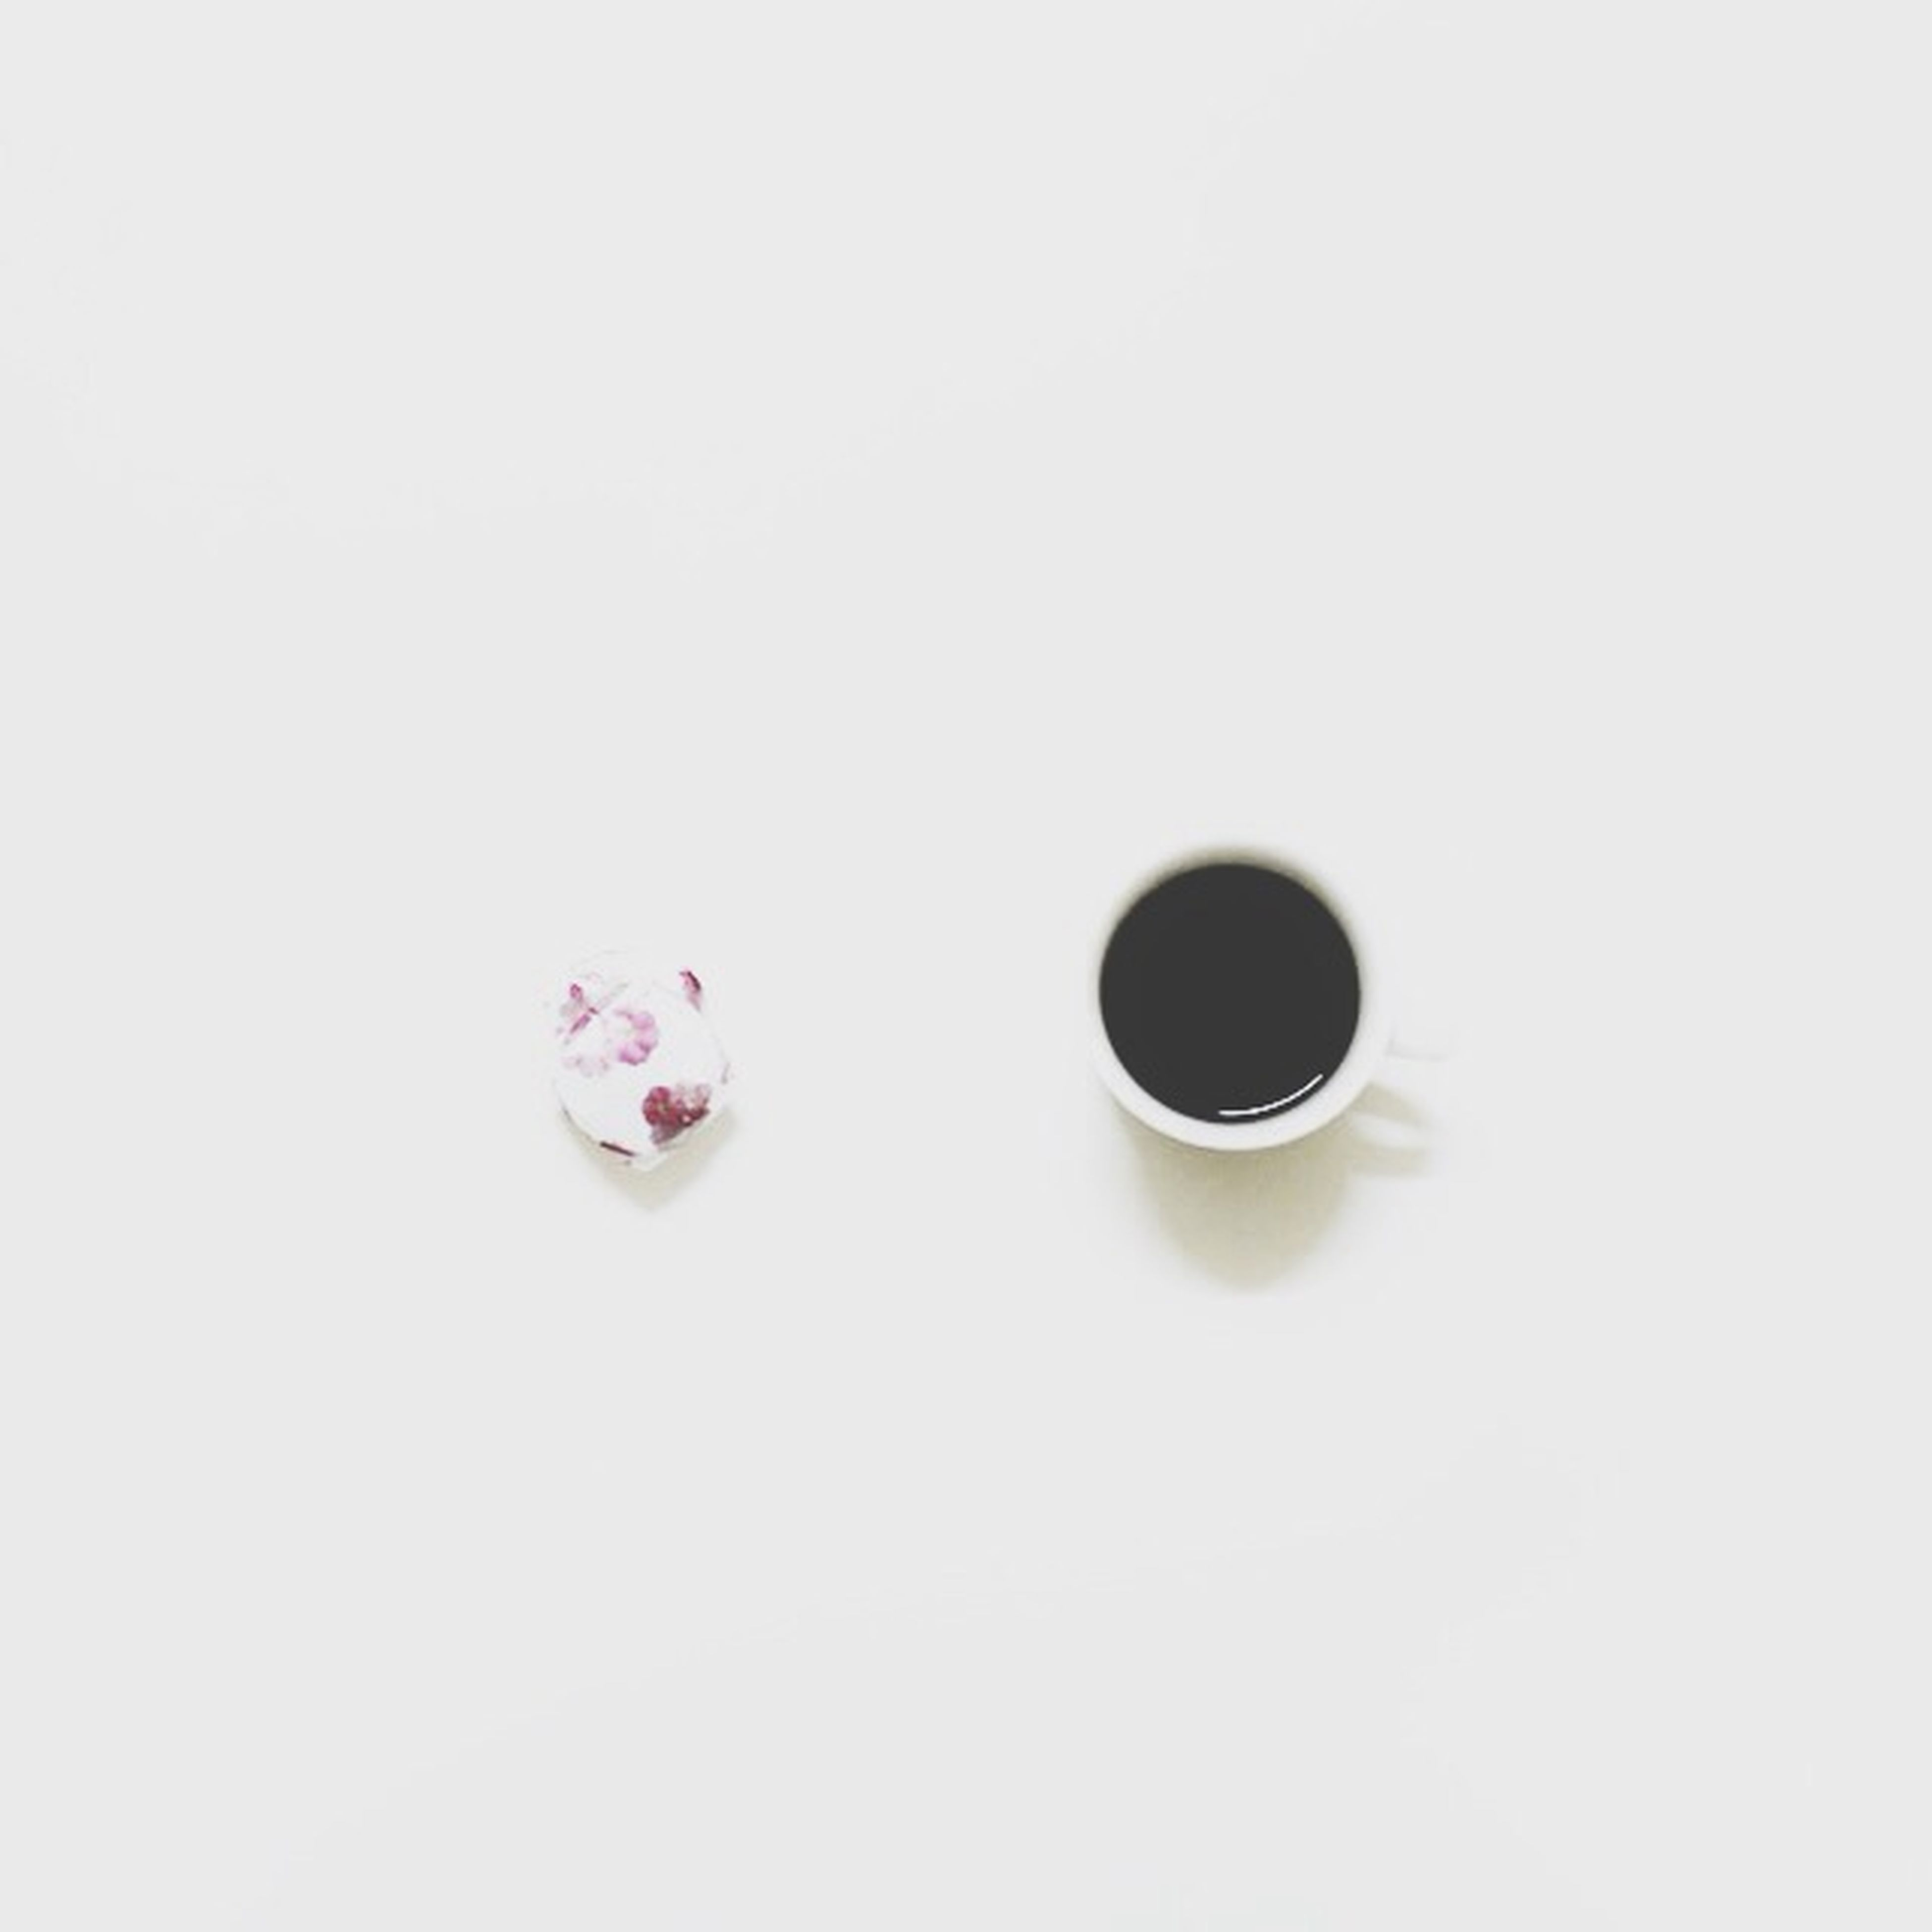 studio shot, white background, still life, indoors, copy space, close-up, food and drink, table, directly above, white color, high angle view, single object, freshness, no people, coffee cup, two objects, cup, overhead view, drink, cut out